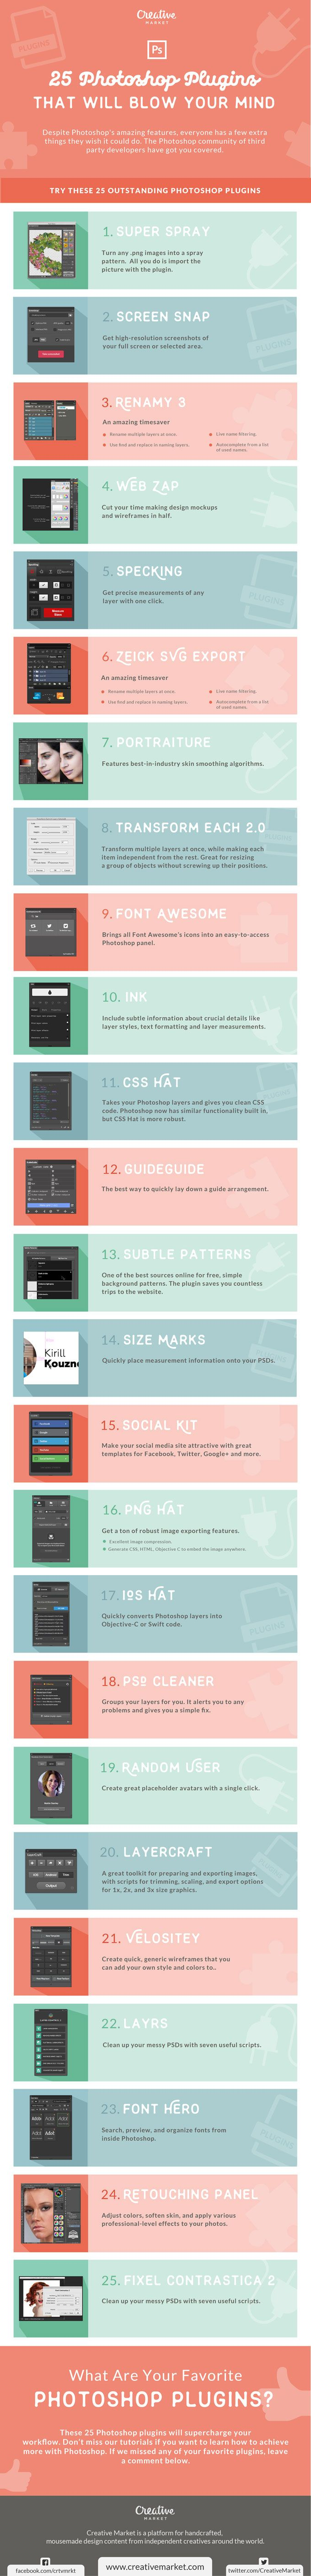 92 best Design Tools & Resourses images on Pinterest | Style guides ...